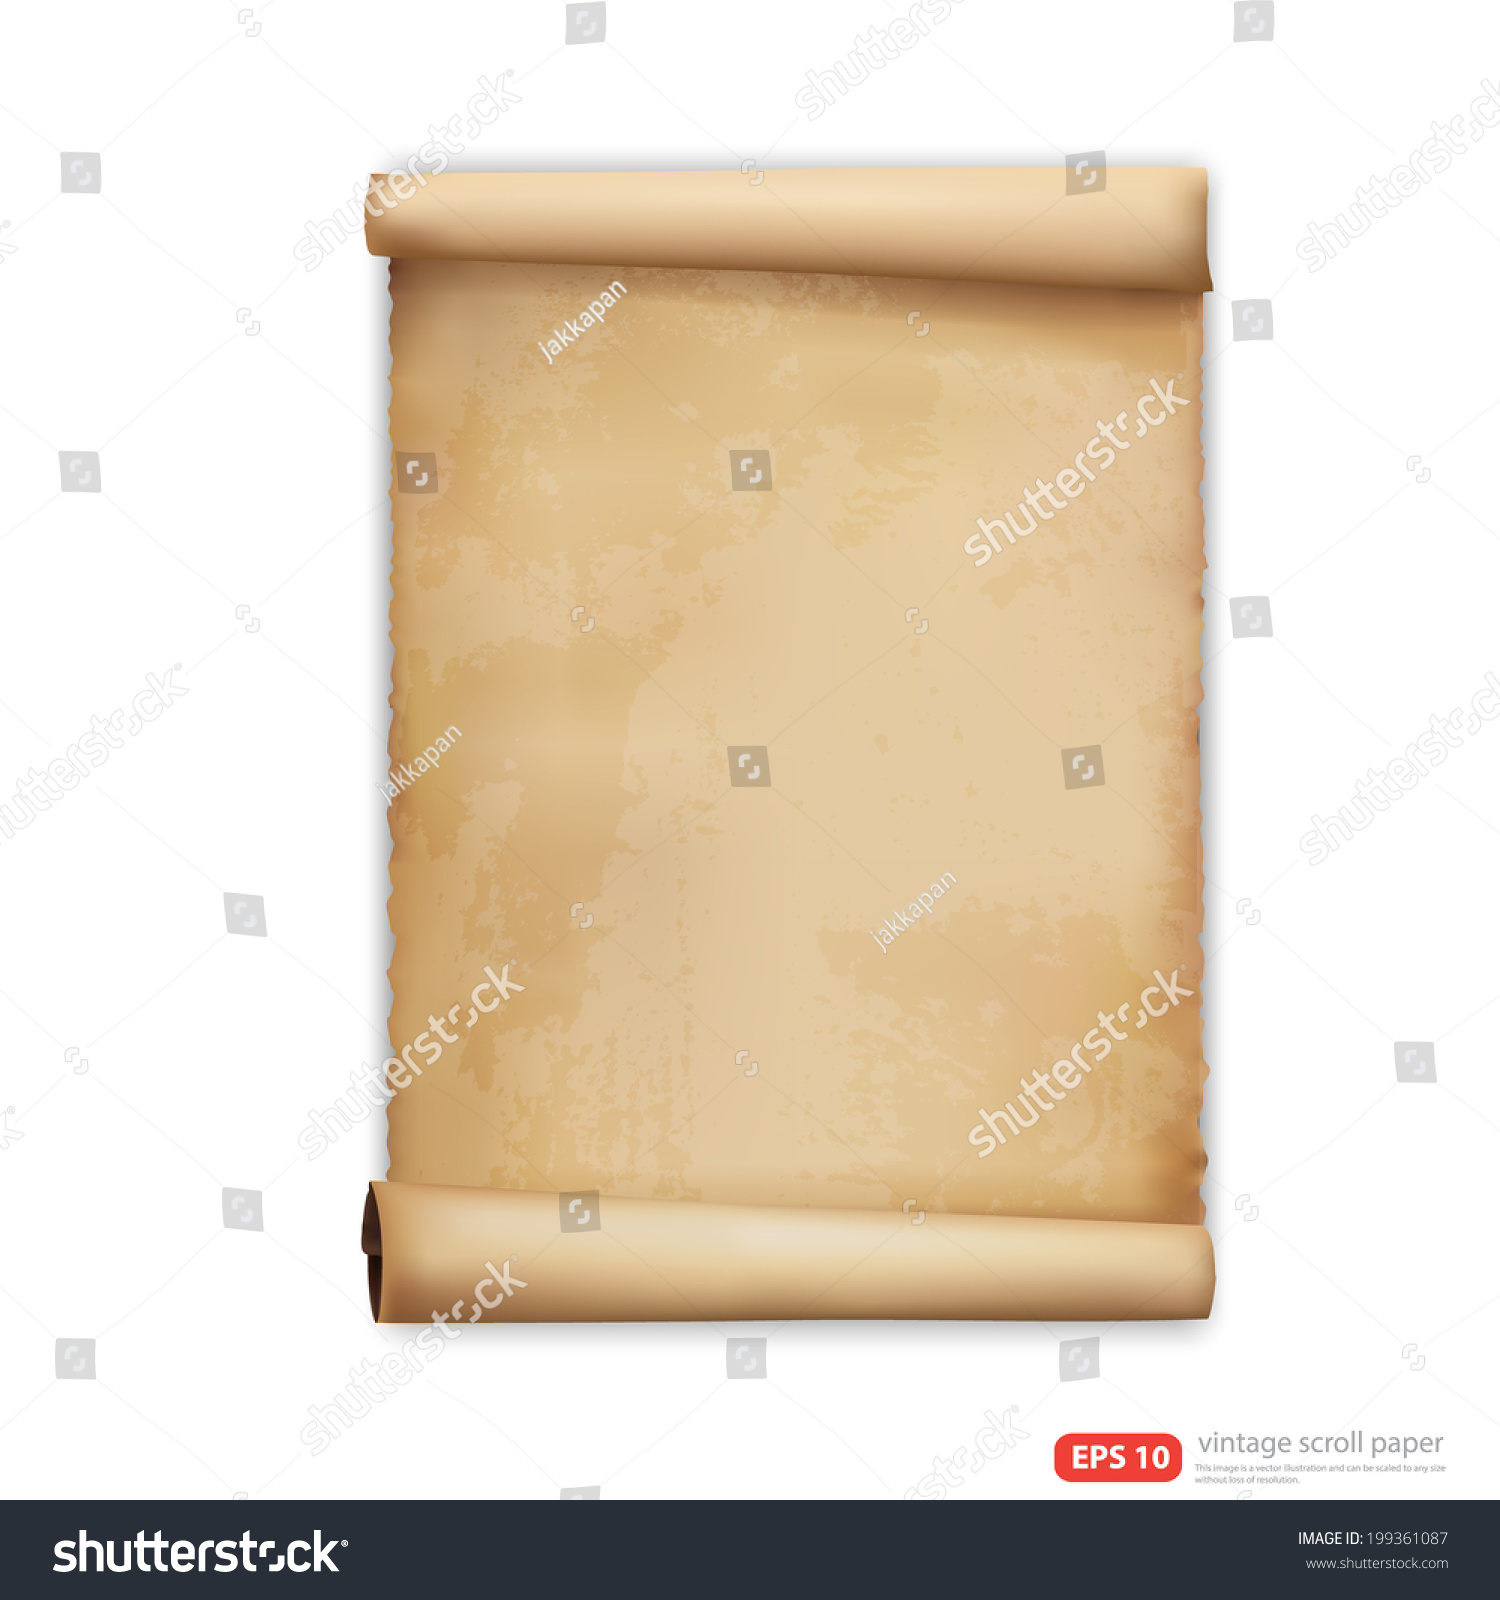 Antique Scroll Paper: Vintage Scroll Paper Vector Format Stock Vector 199361087